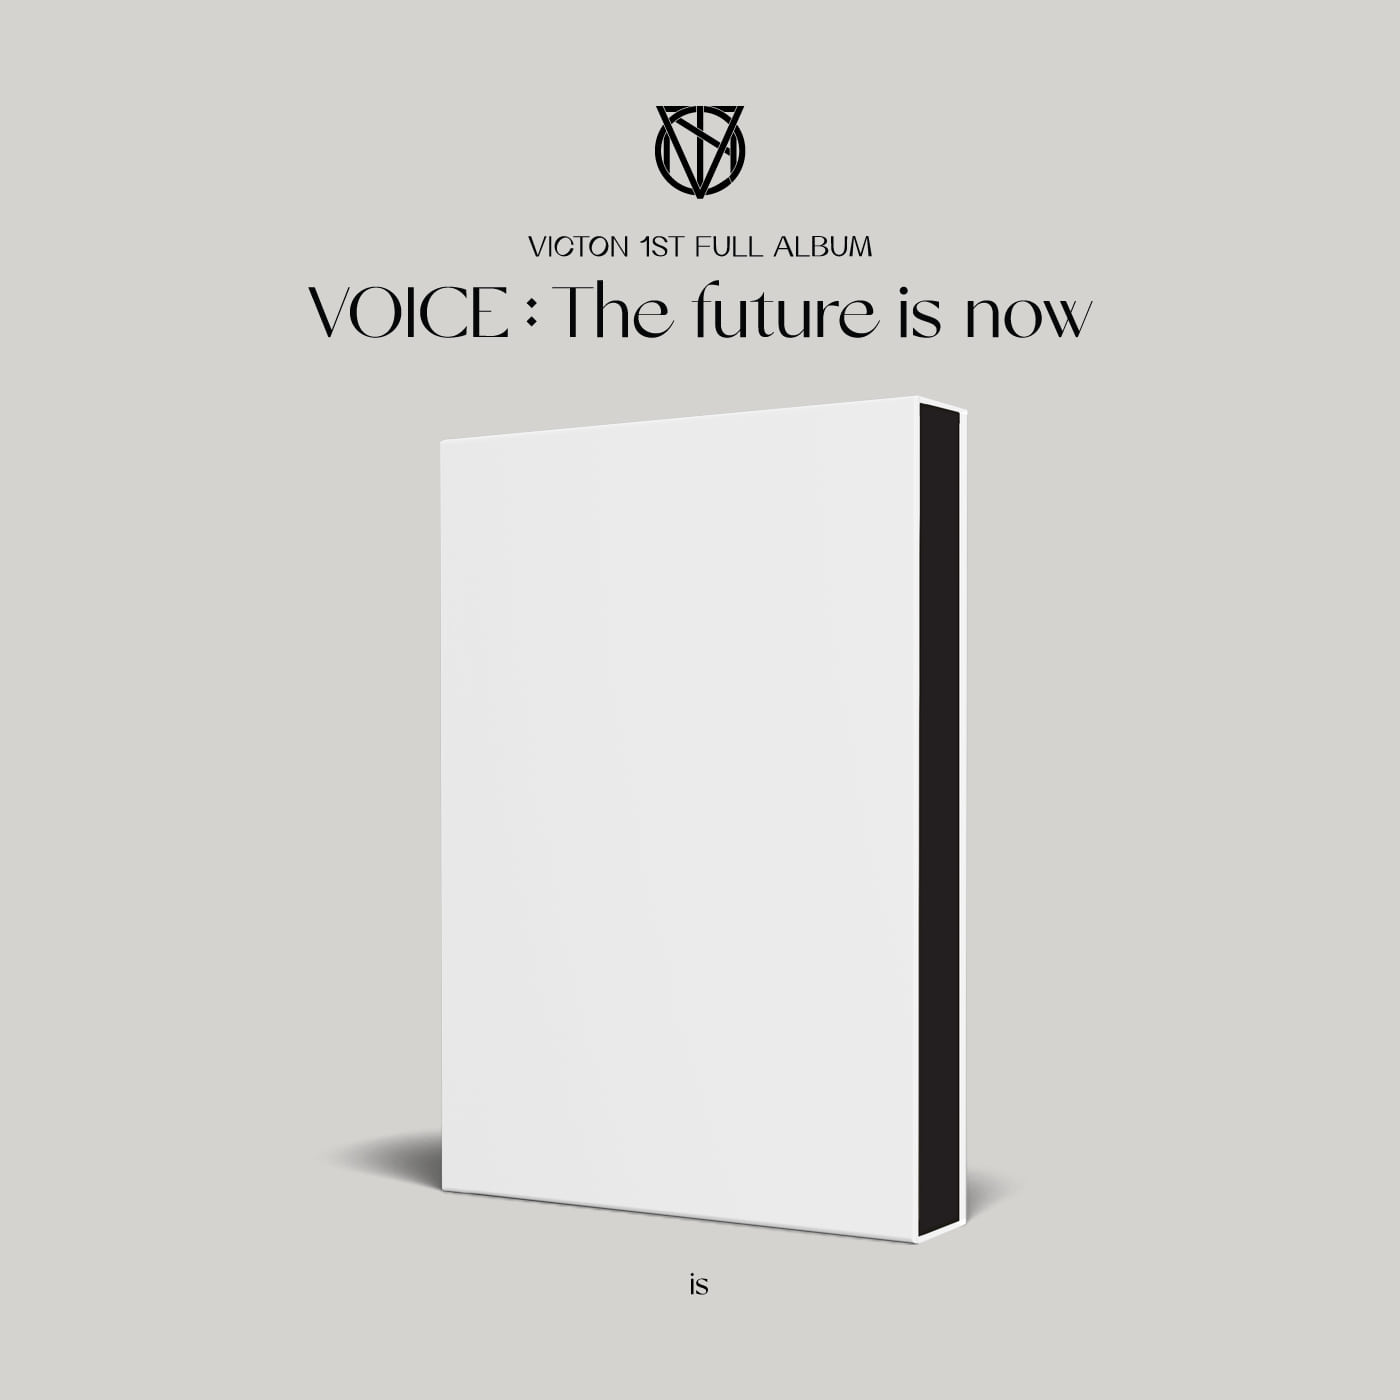 [PRE-ORDER] VICTON - Album Vol.1 [VOICE : The future is now] (is ver.)케이팝스토어(kpop store)